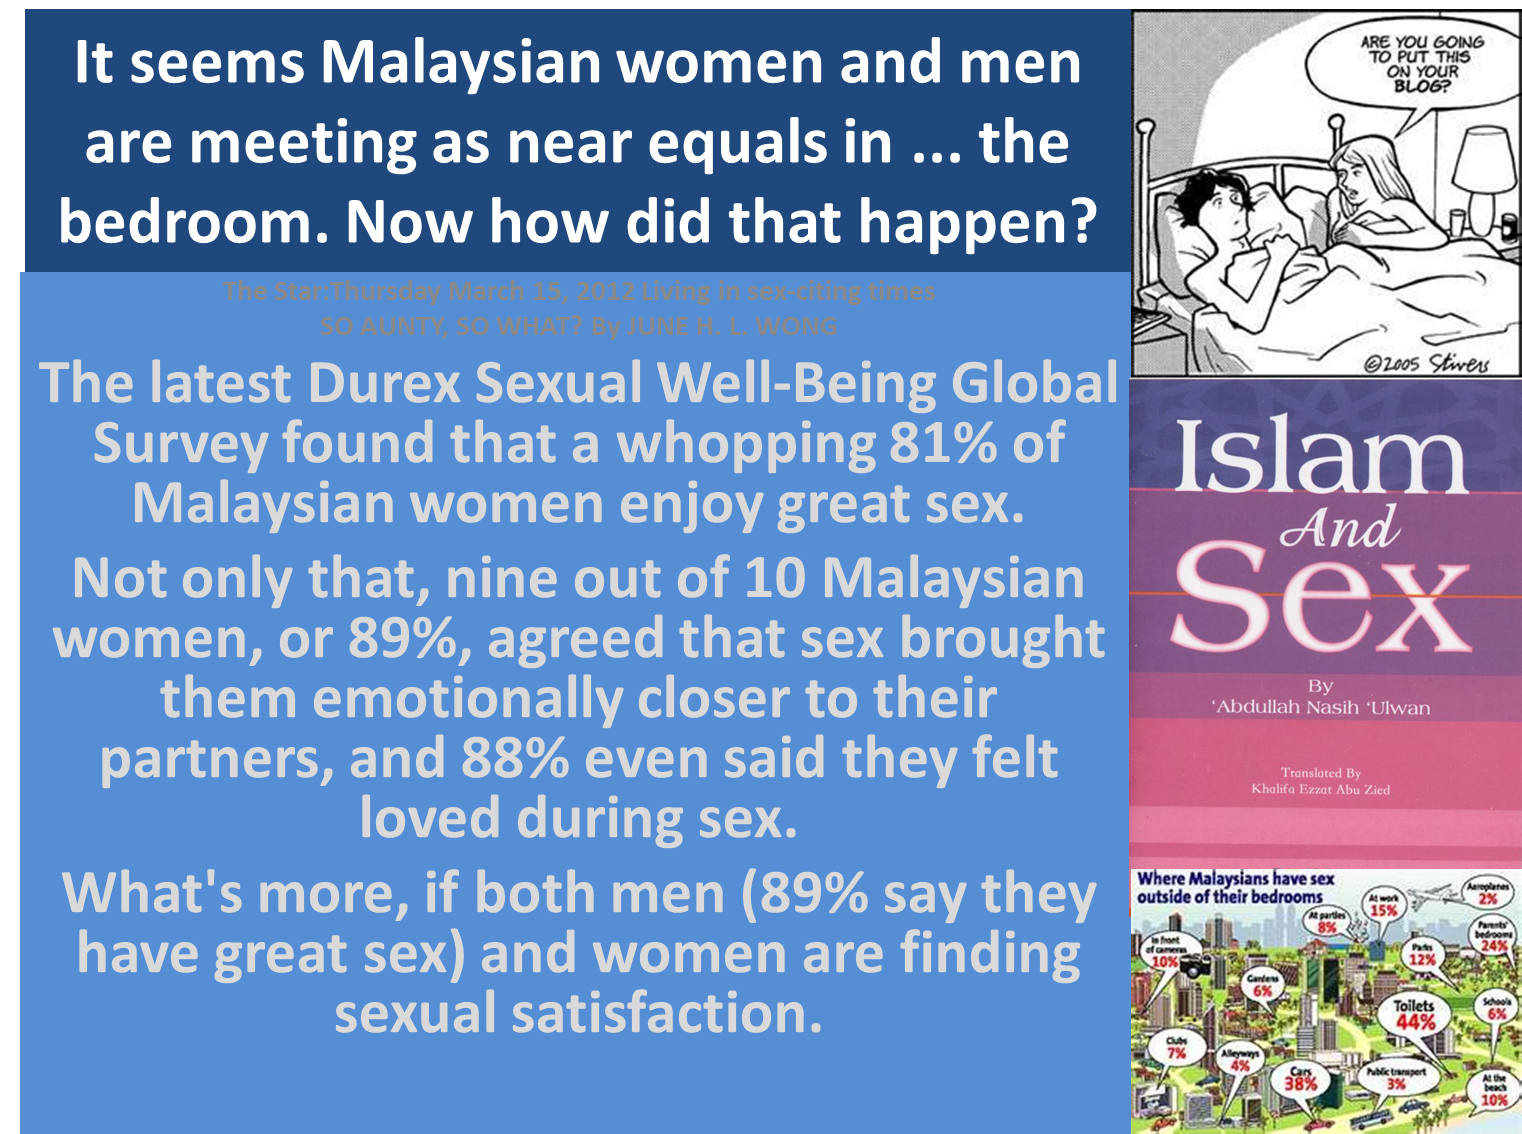 sex-education-for-men